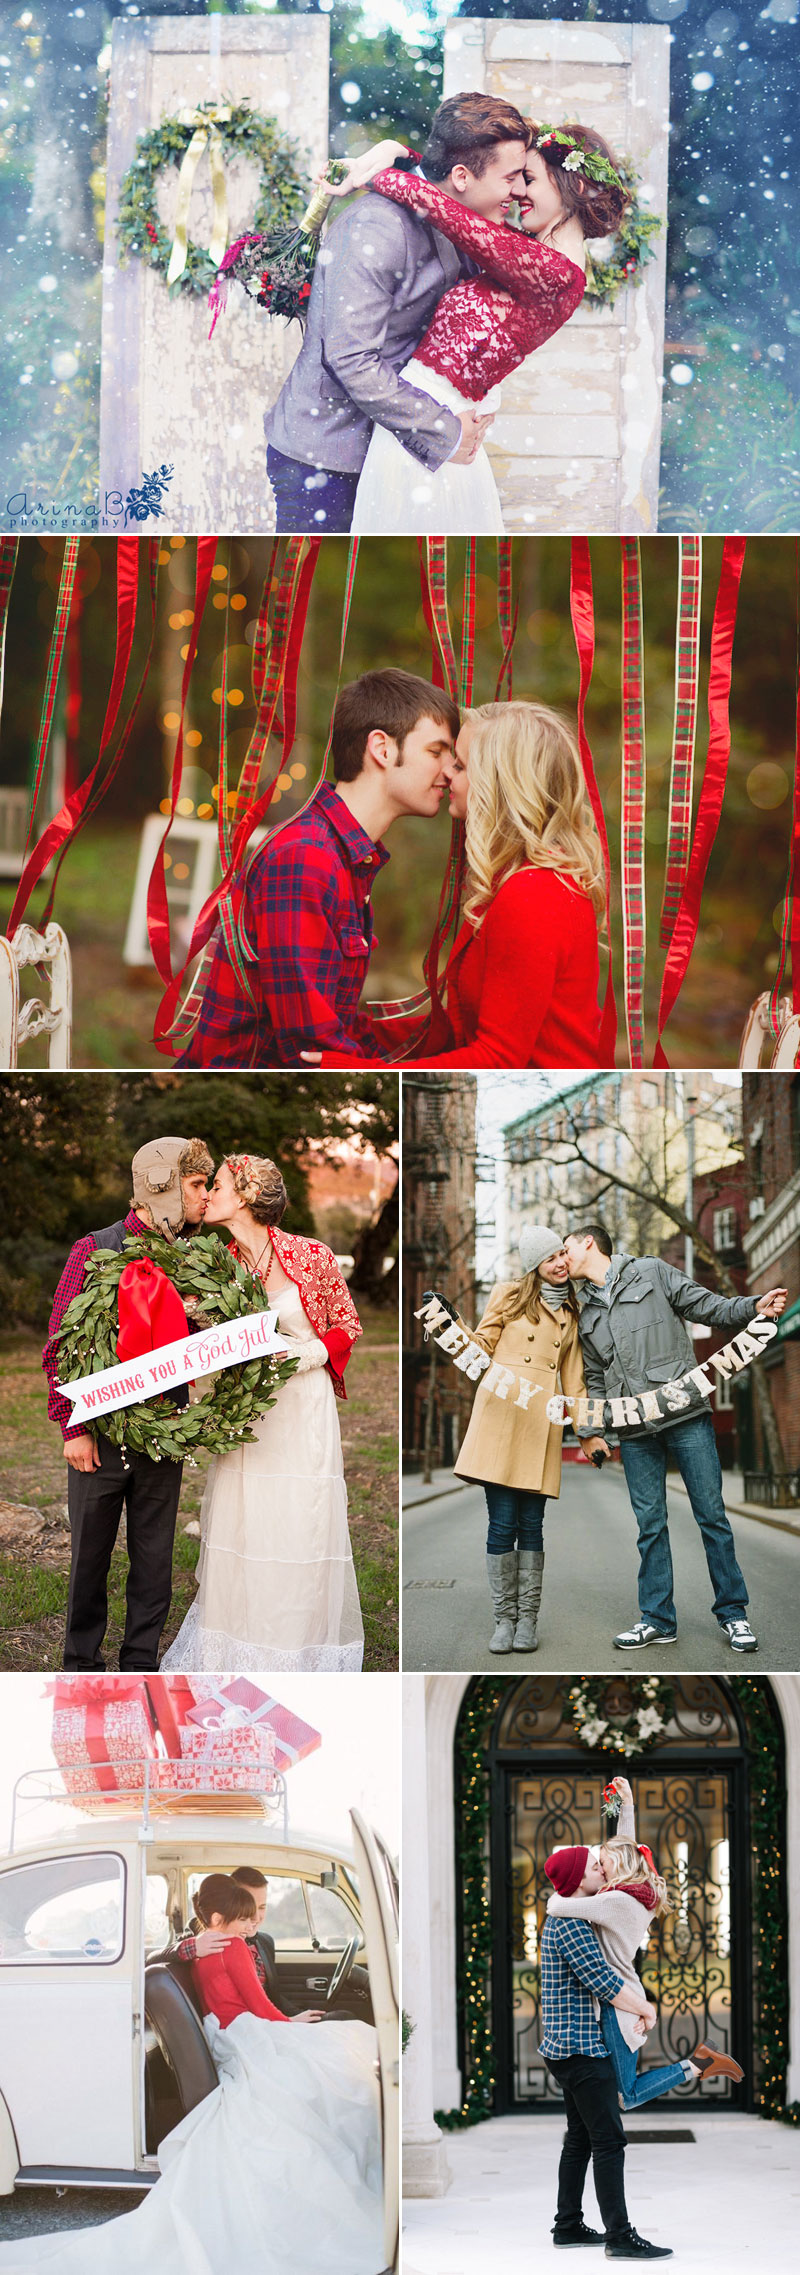 Cute Christmas Ideas For Couples.20 Cute Christmas Photo Ideas For Couples To Show Love